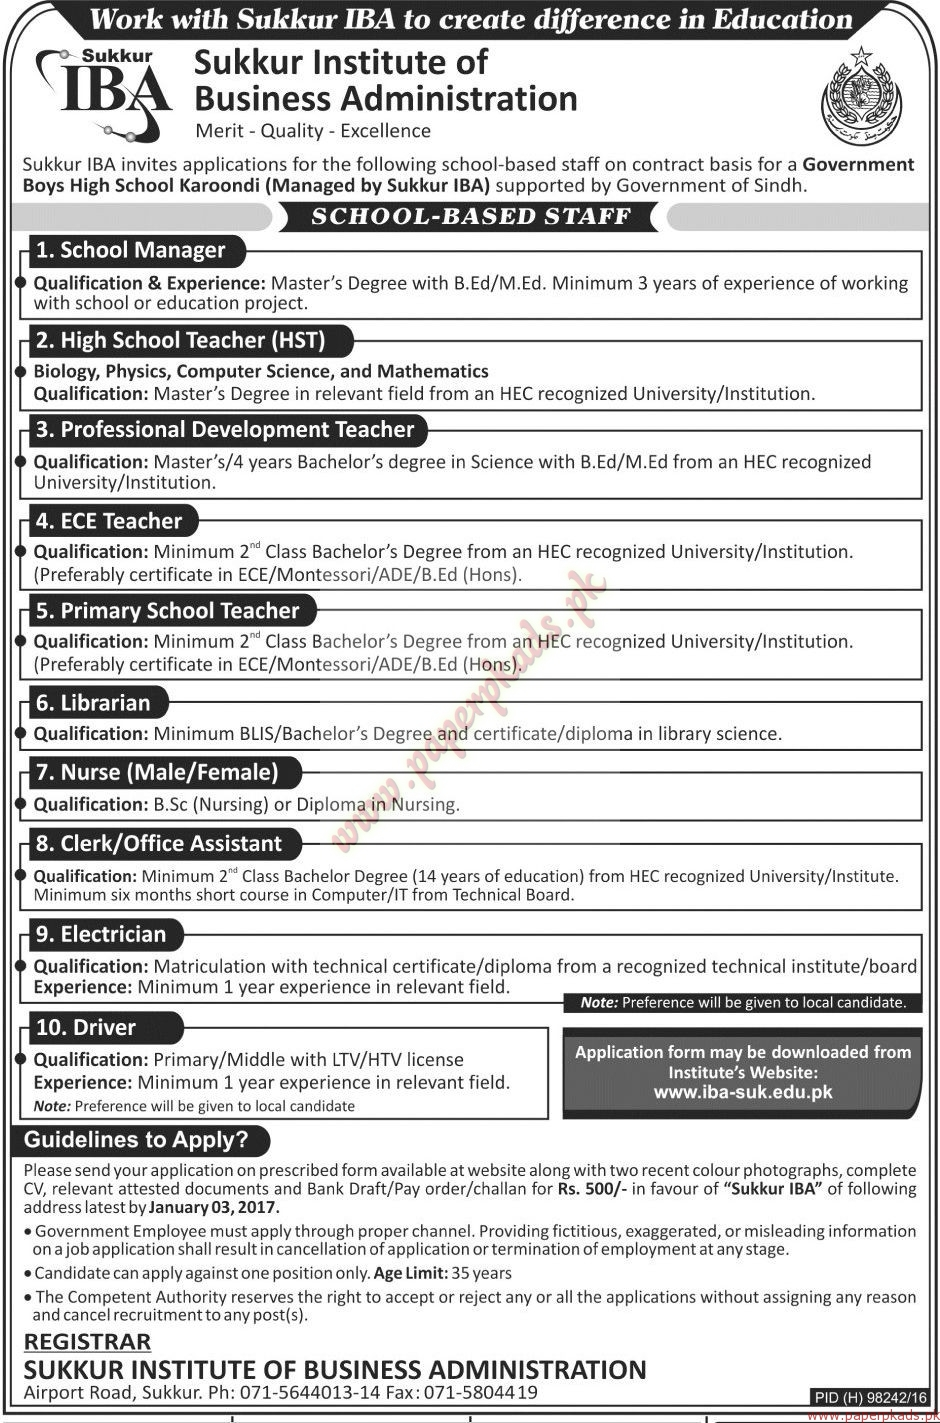 sukkur institute of business administration jobs jang jobs ads sukkur institute of business administration jobs 1 jang jobs ads 18 2016